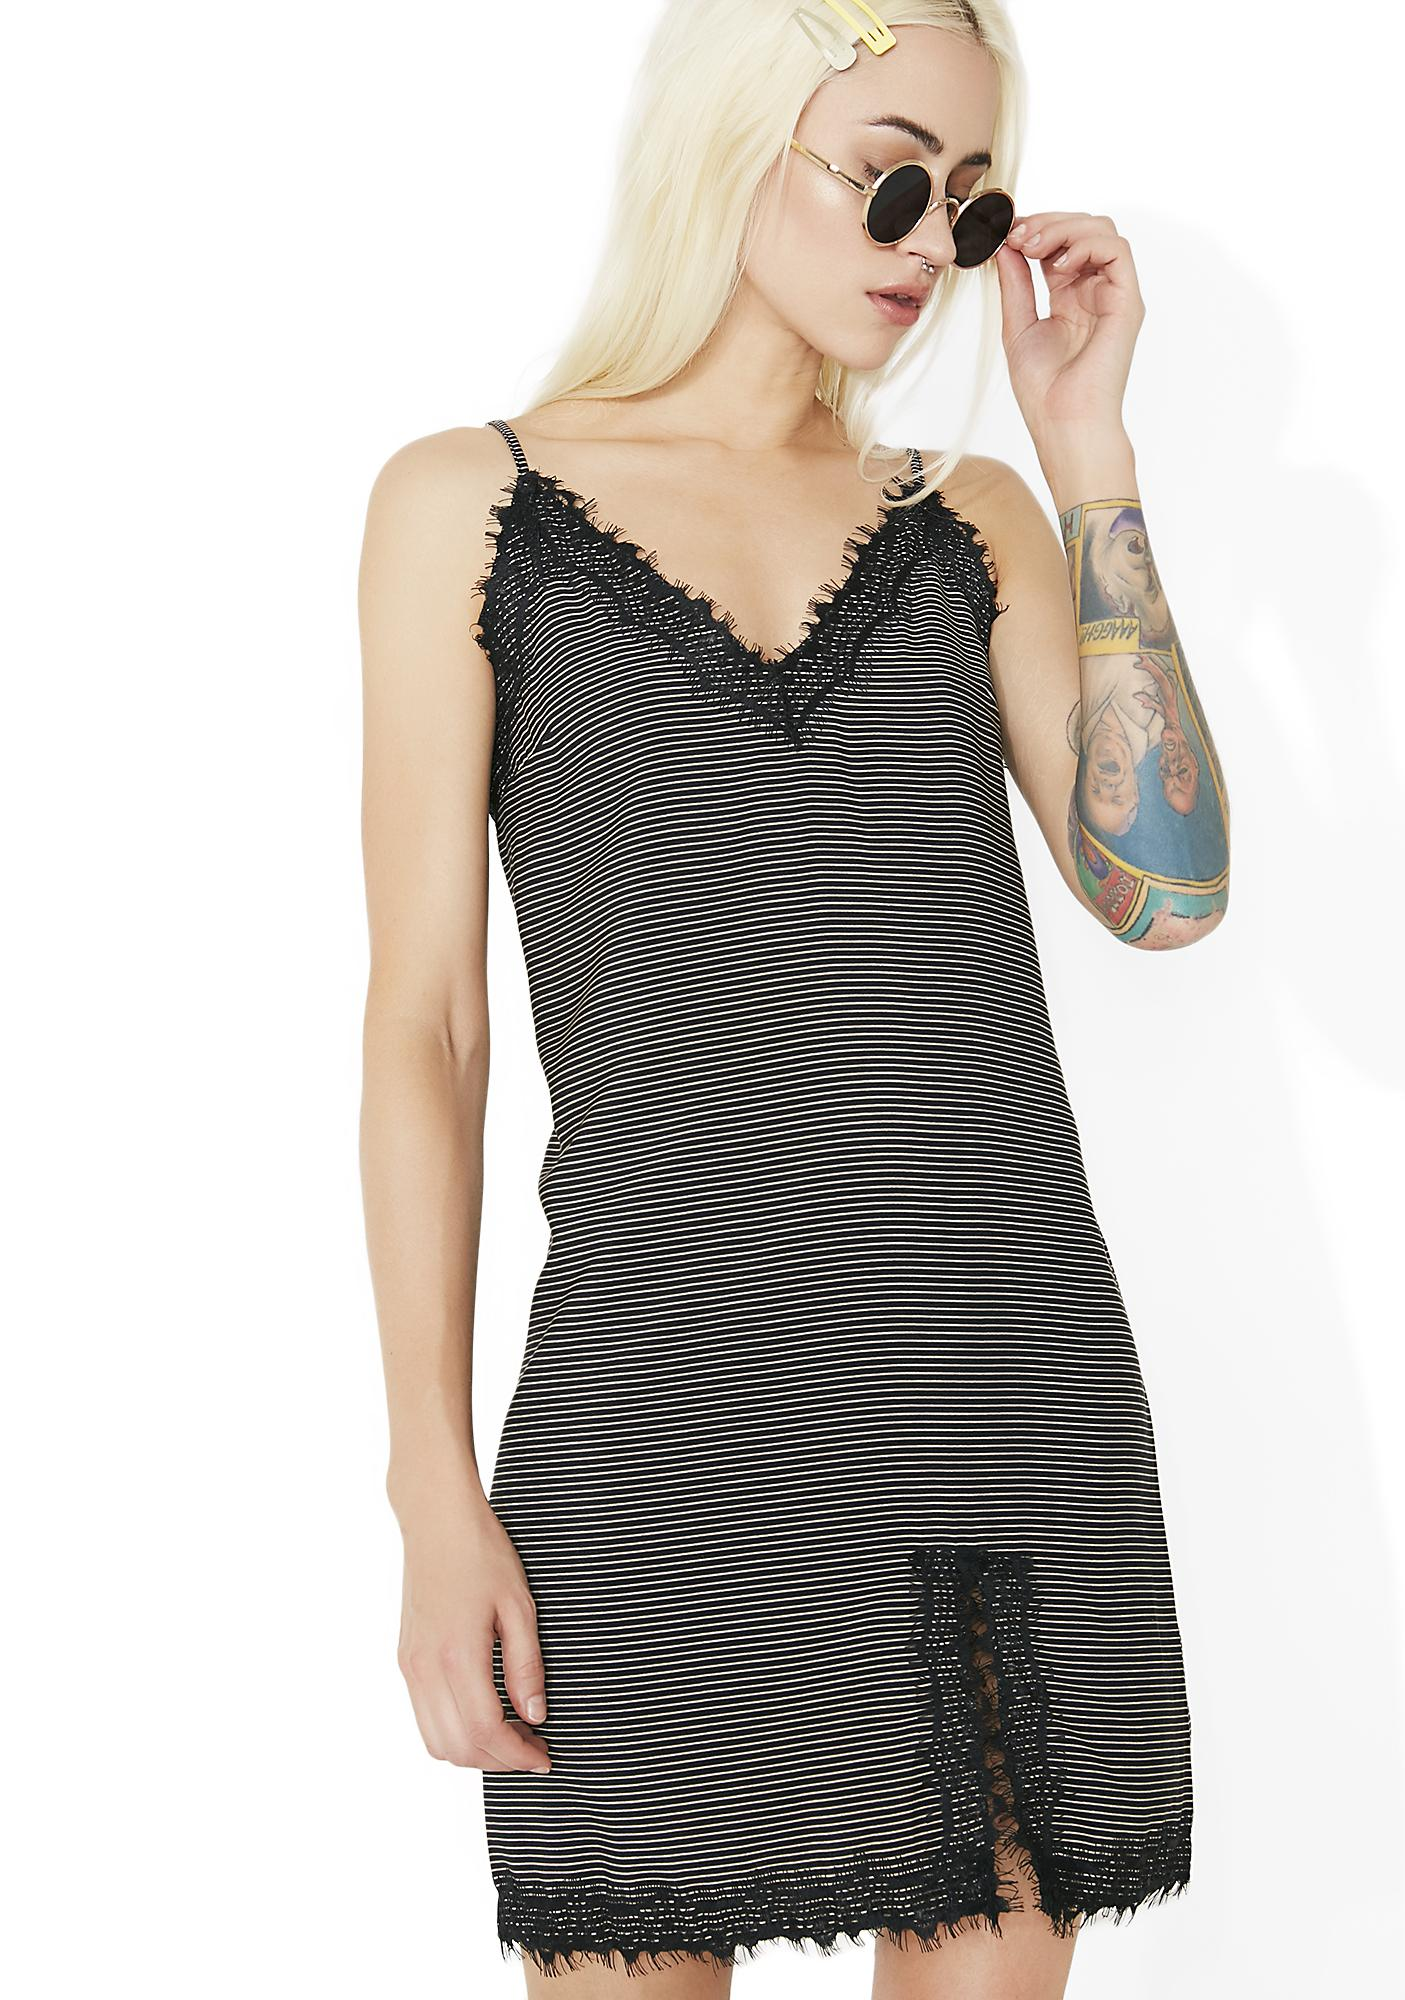 Lira Clothing Malina Dress